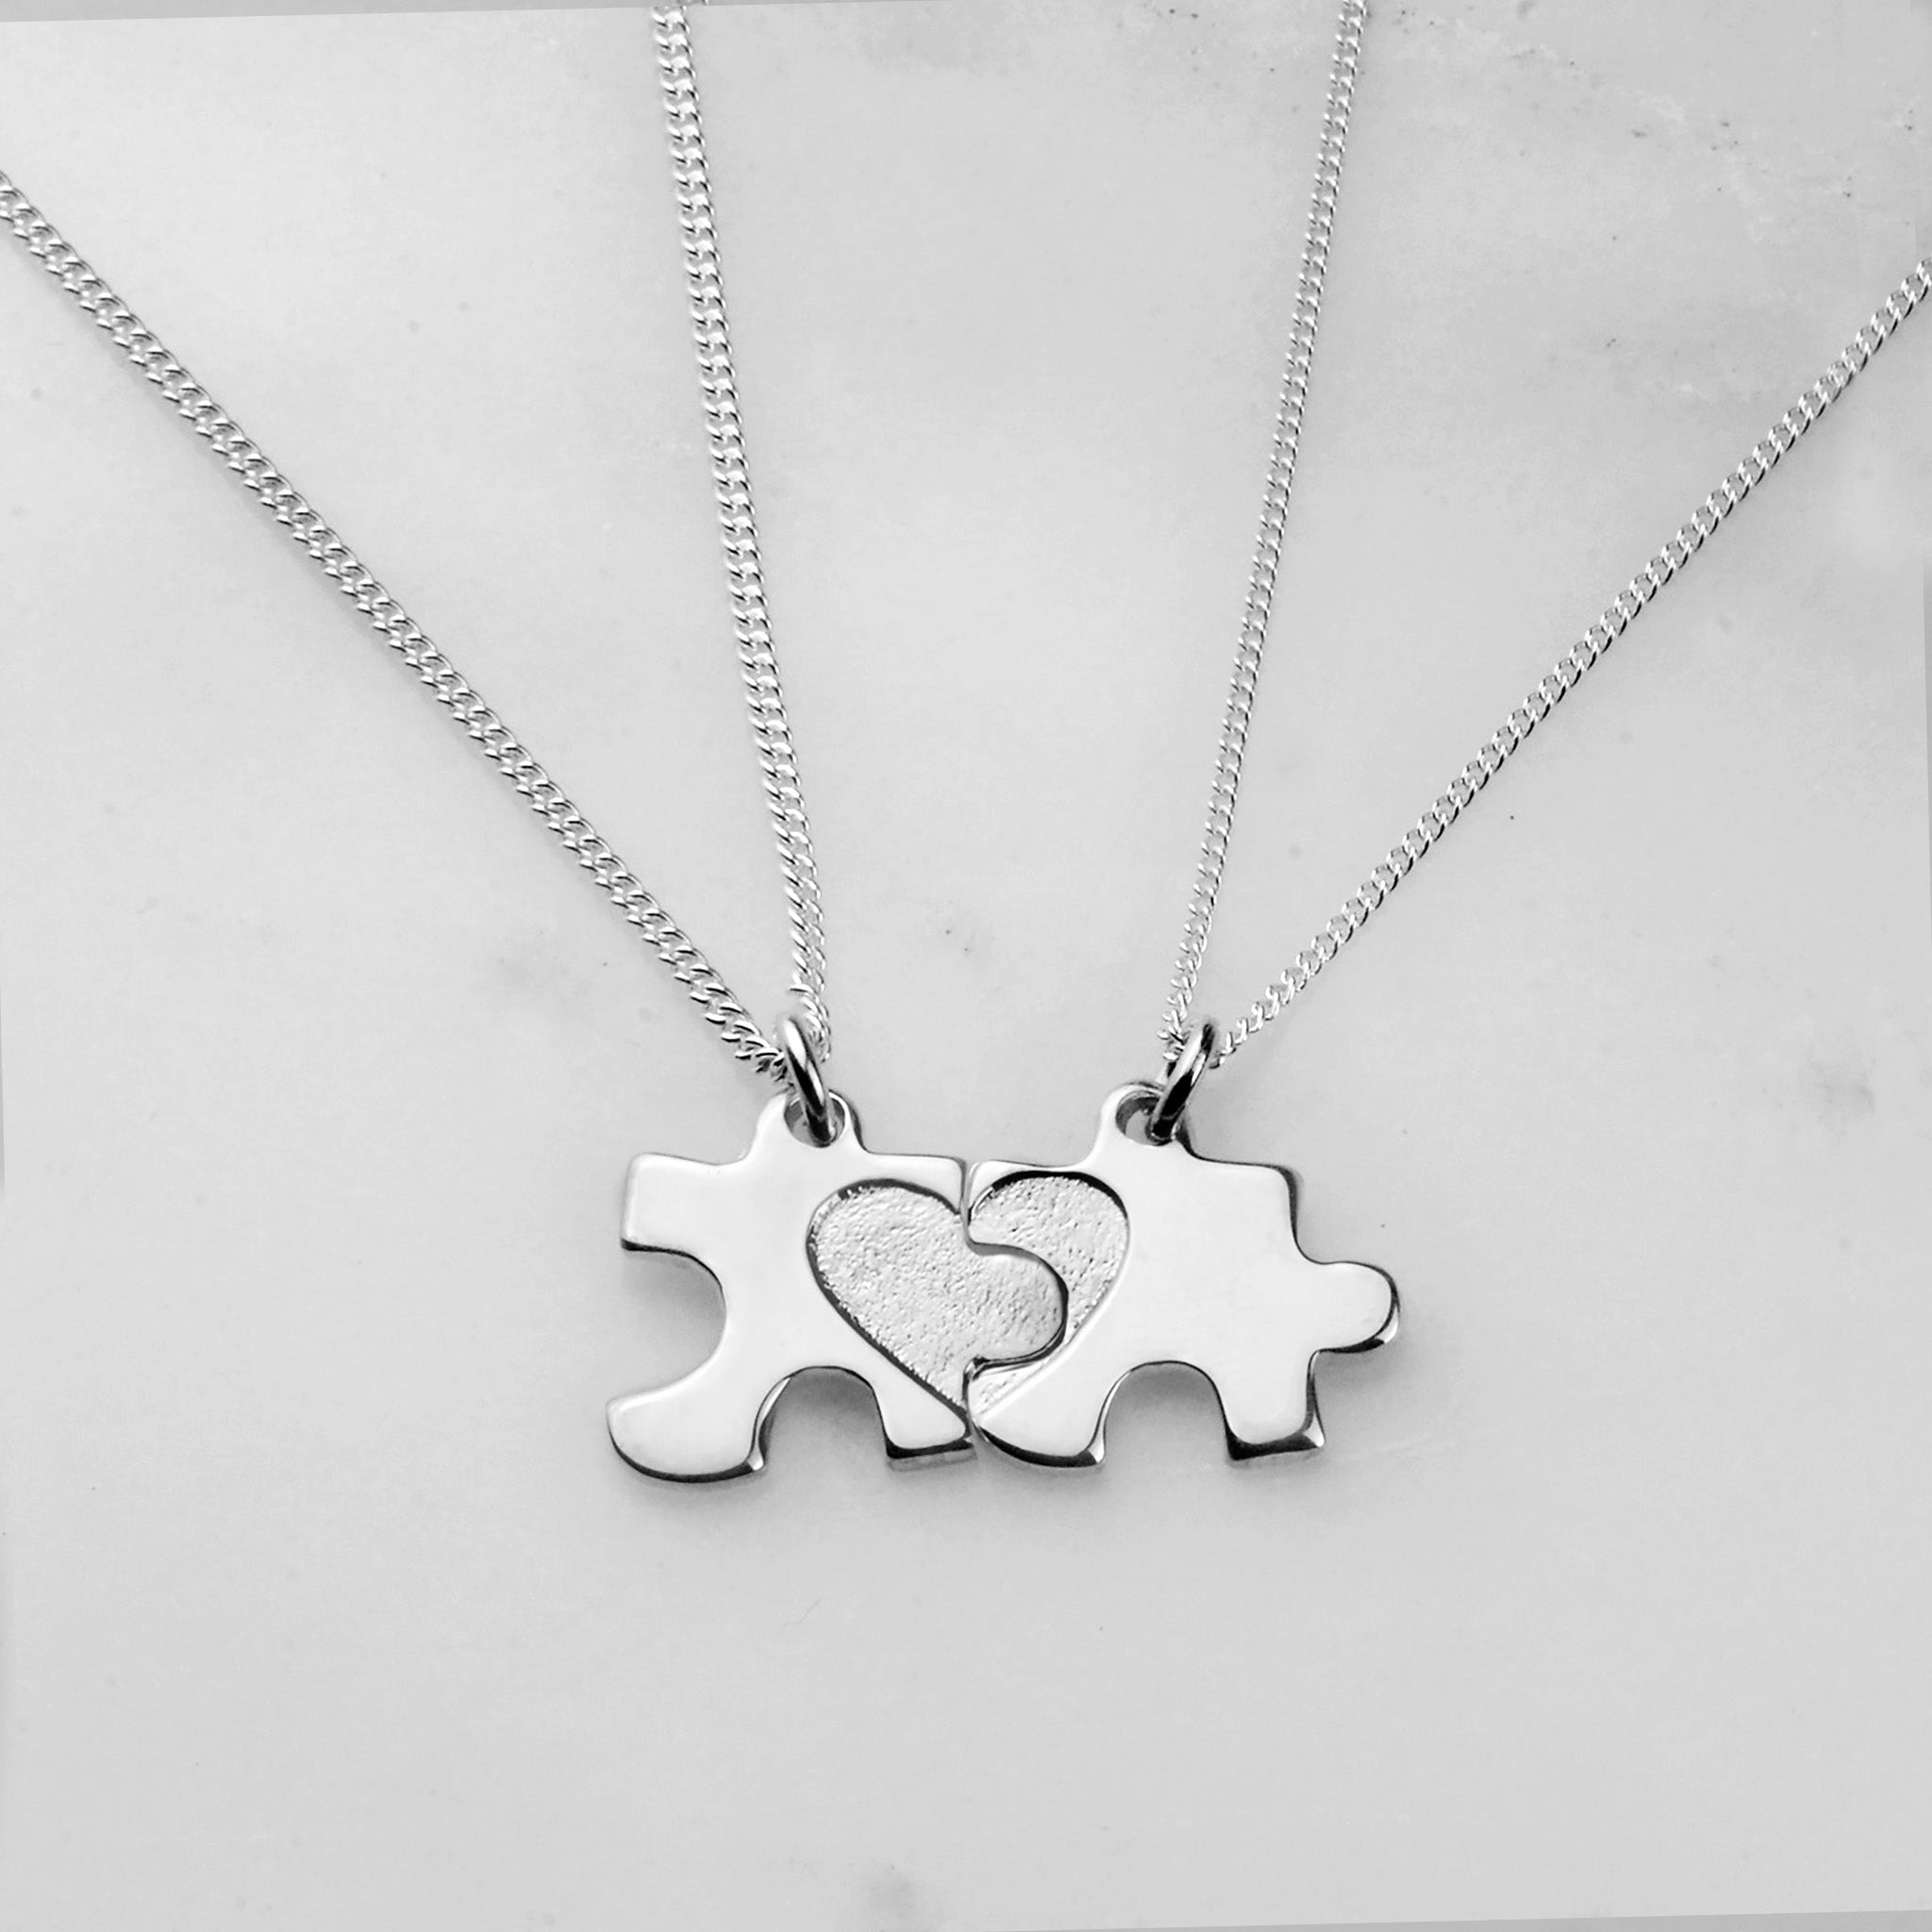 Jigsaw Necklaces